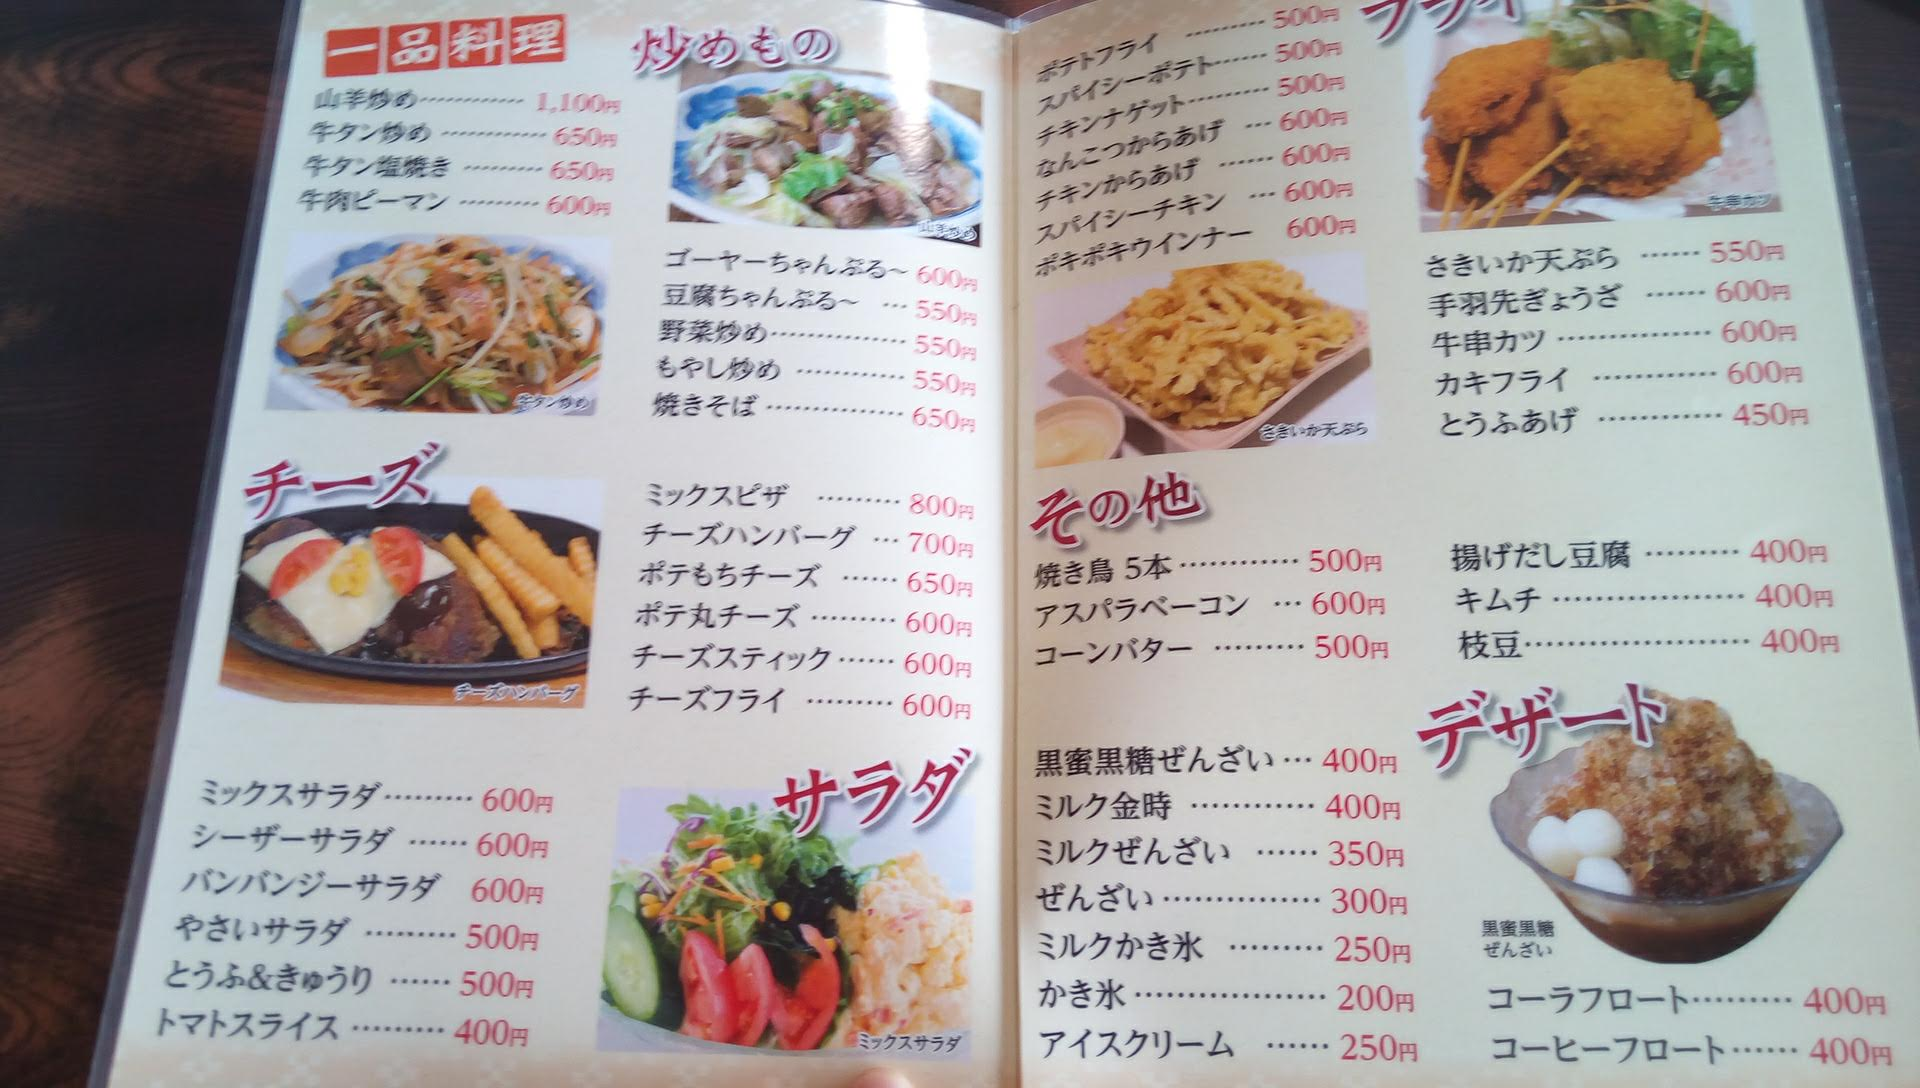 The menu of Manpuku restaurant 3